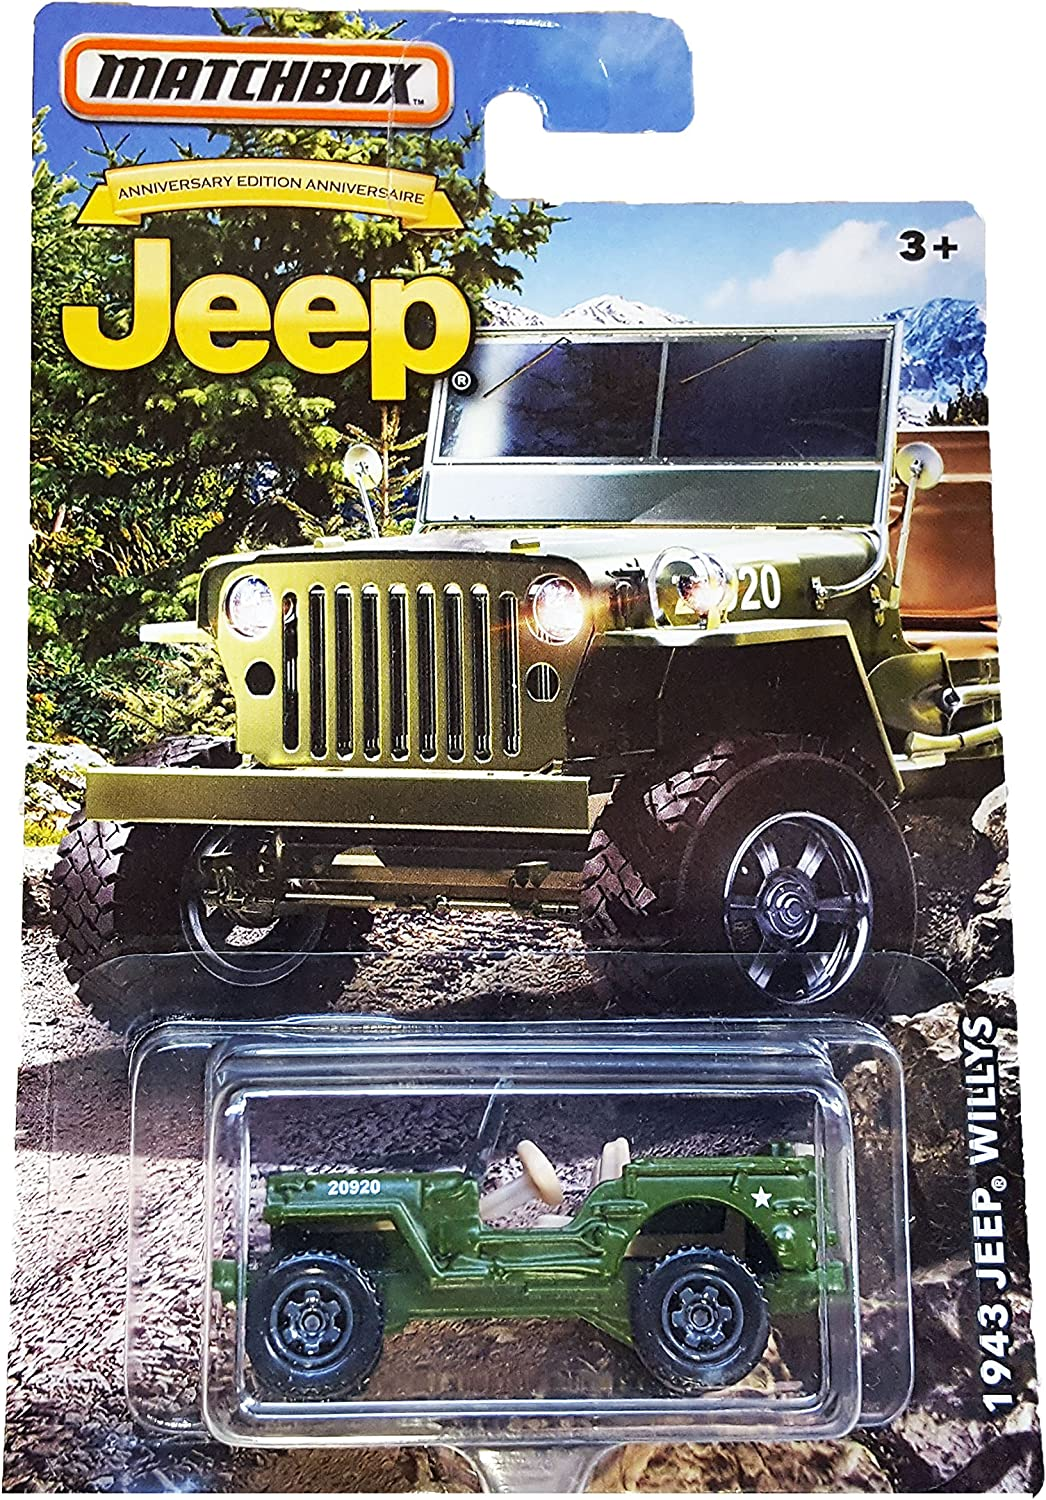 MATCHBOX LIMITED EDITION JEEP ANNIVERSARY EDITION GREEN 1943 JEEP WILLYS DIE-CAST by Matchbox: Amazon.es: Juguetes y juegos